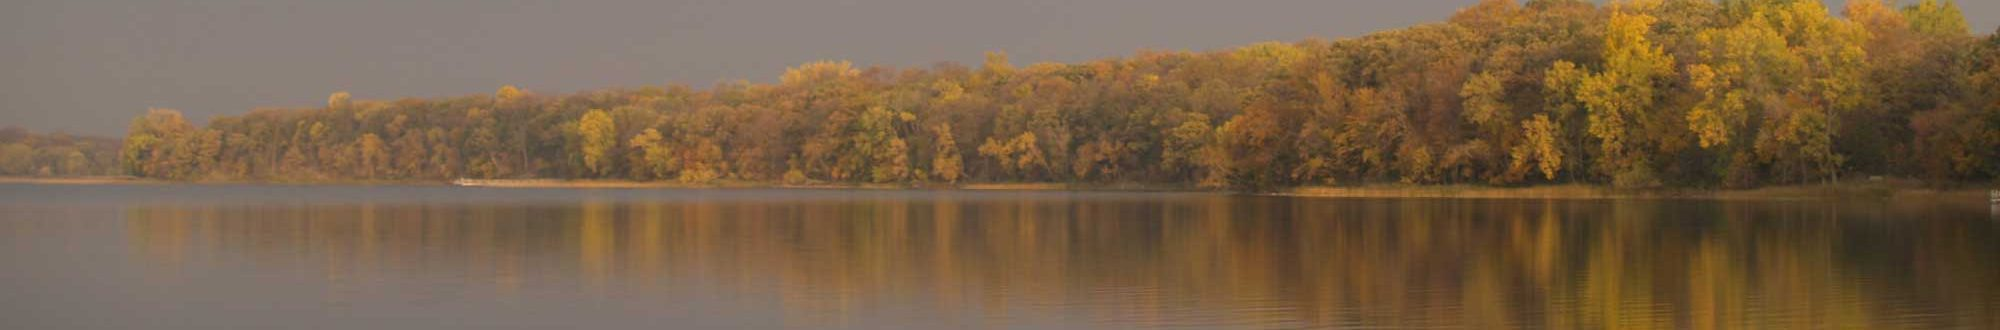 Foggy lake reflecting autumn trees at Sibley State Park